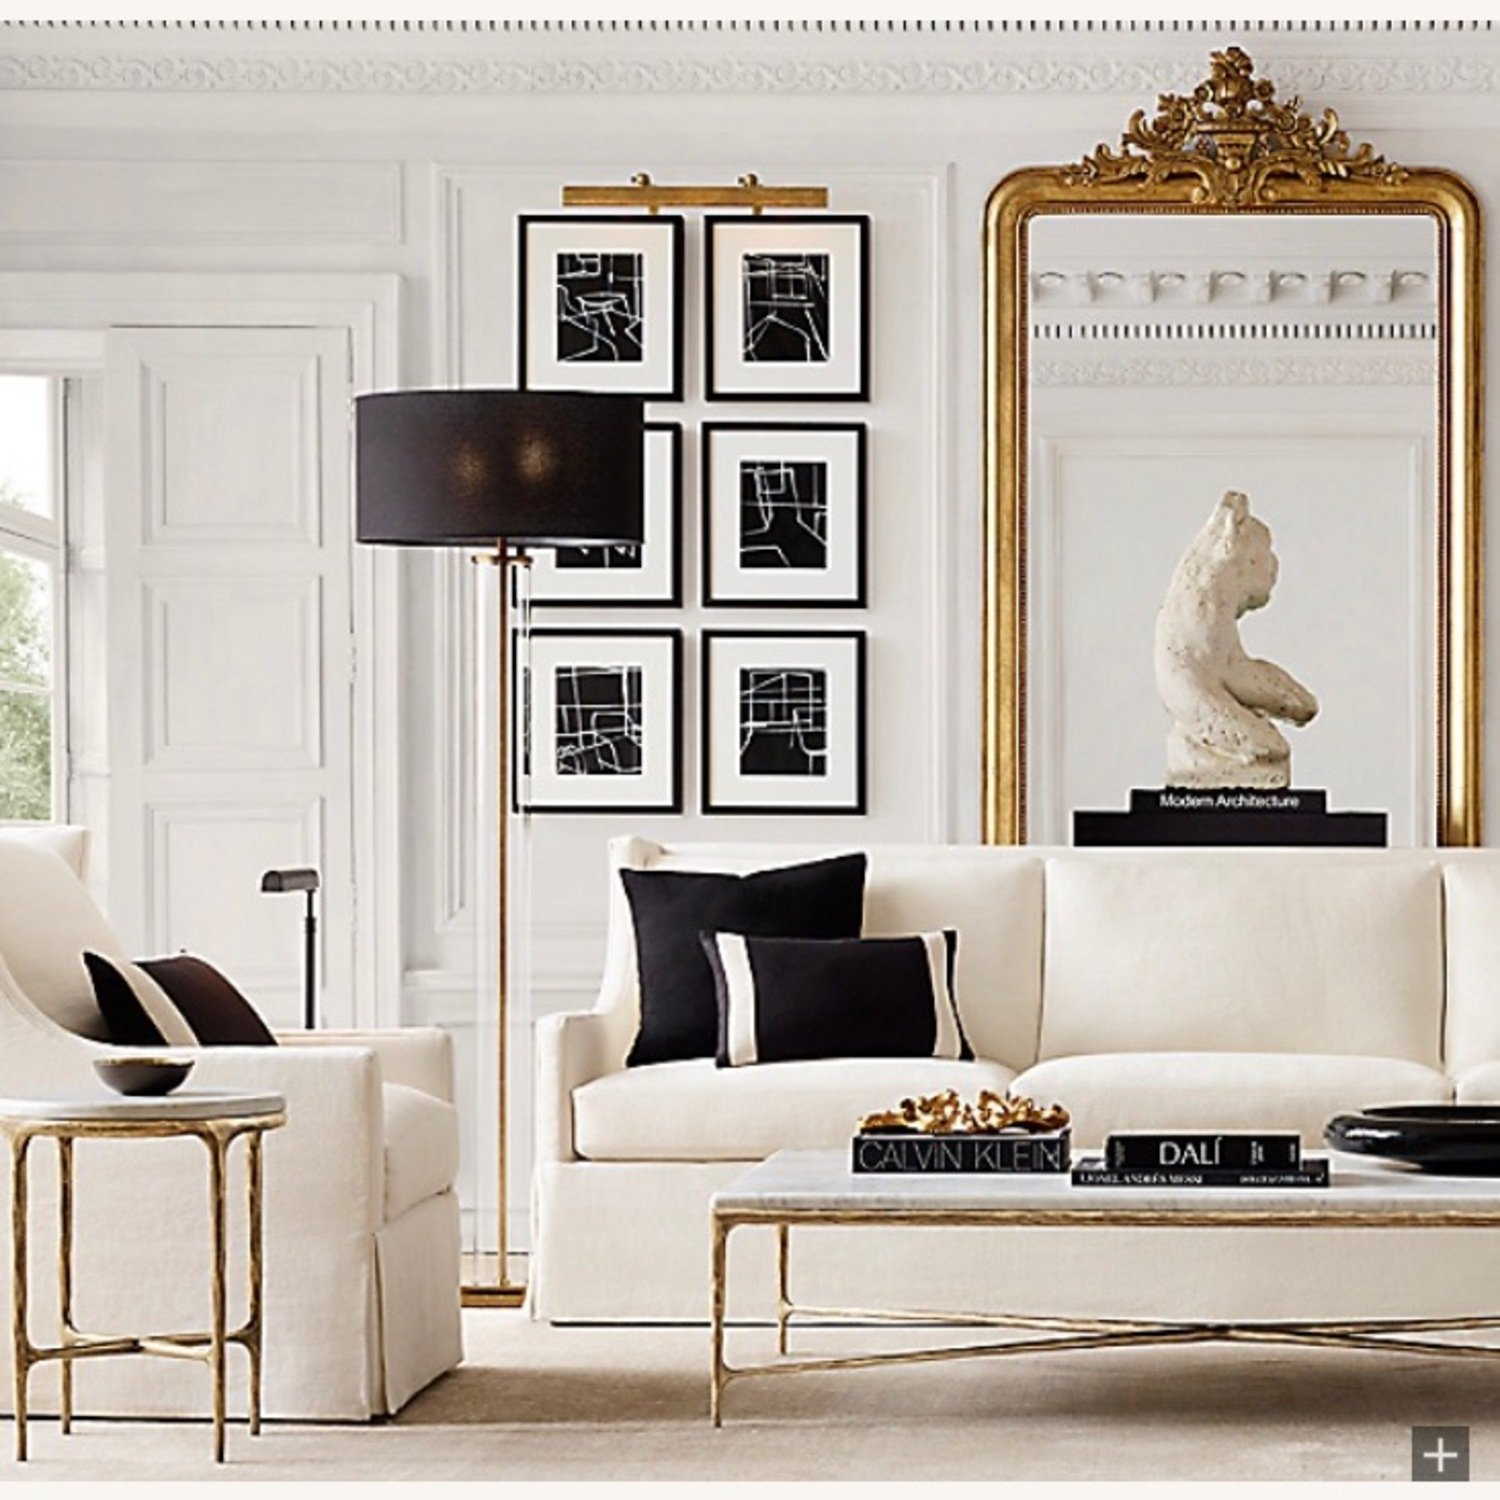 White modern living room with black and gold accents and oversized ornate gold French mirror